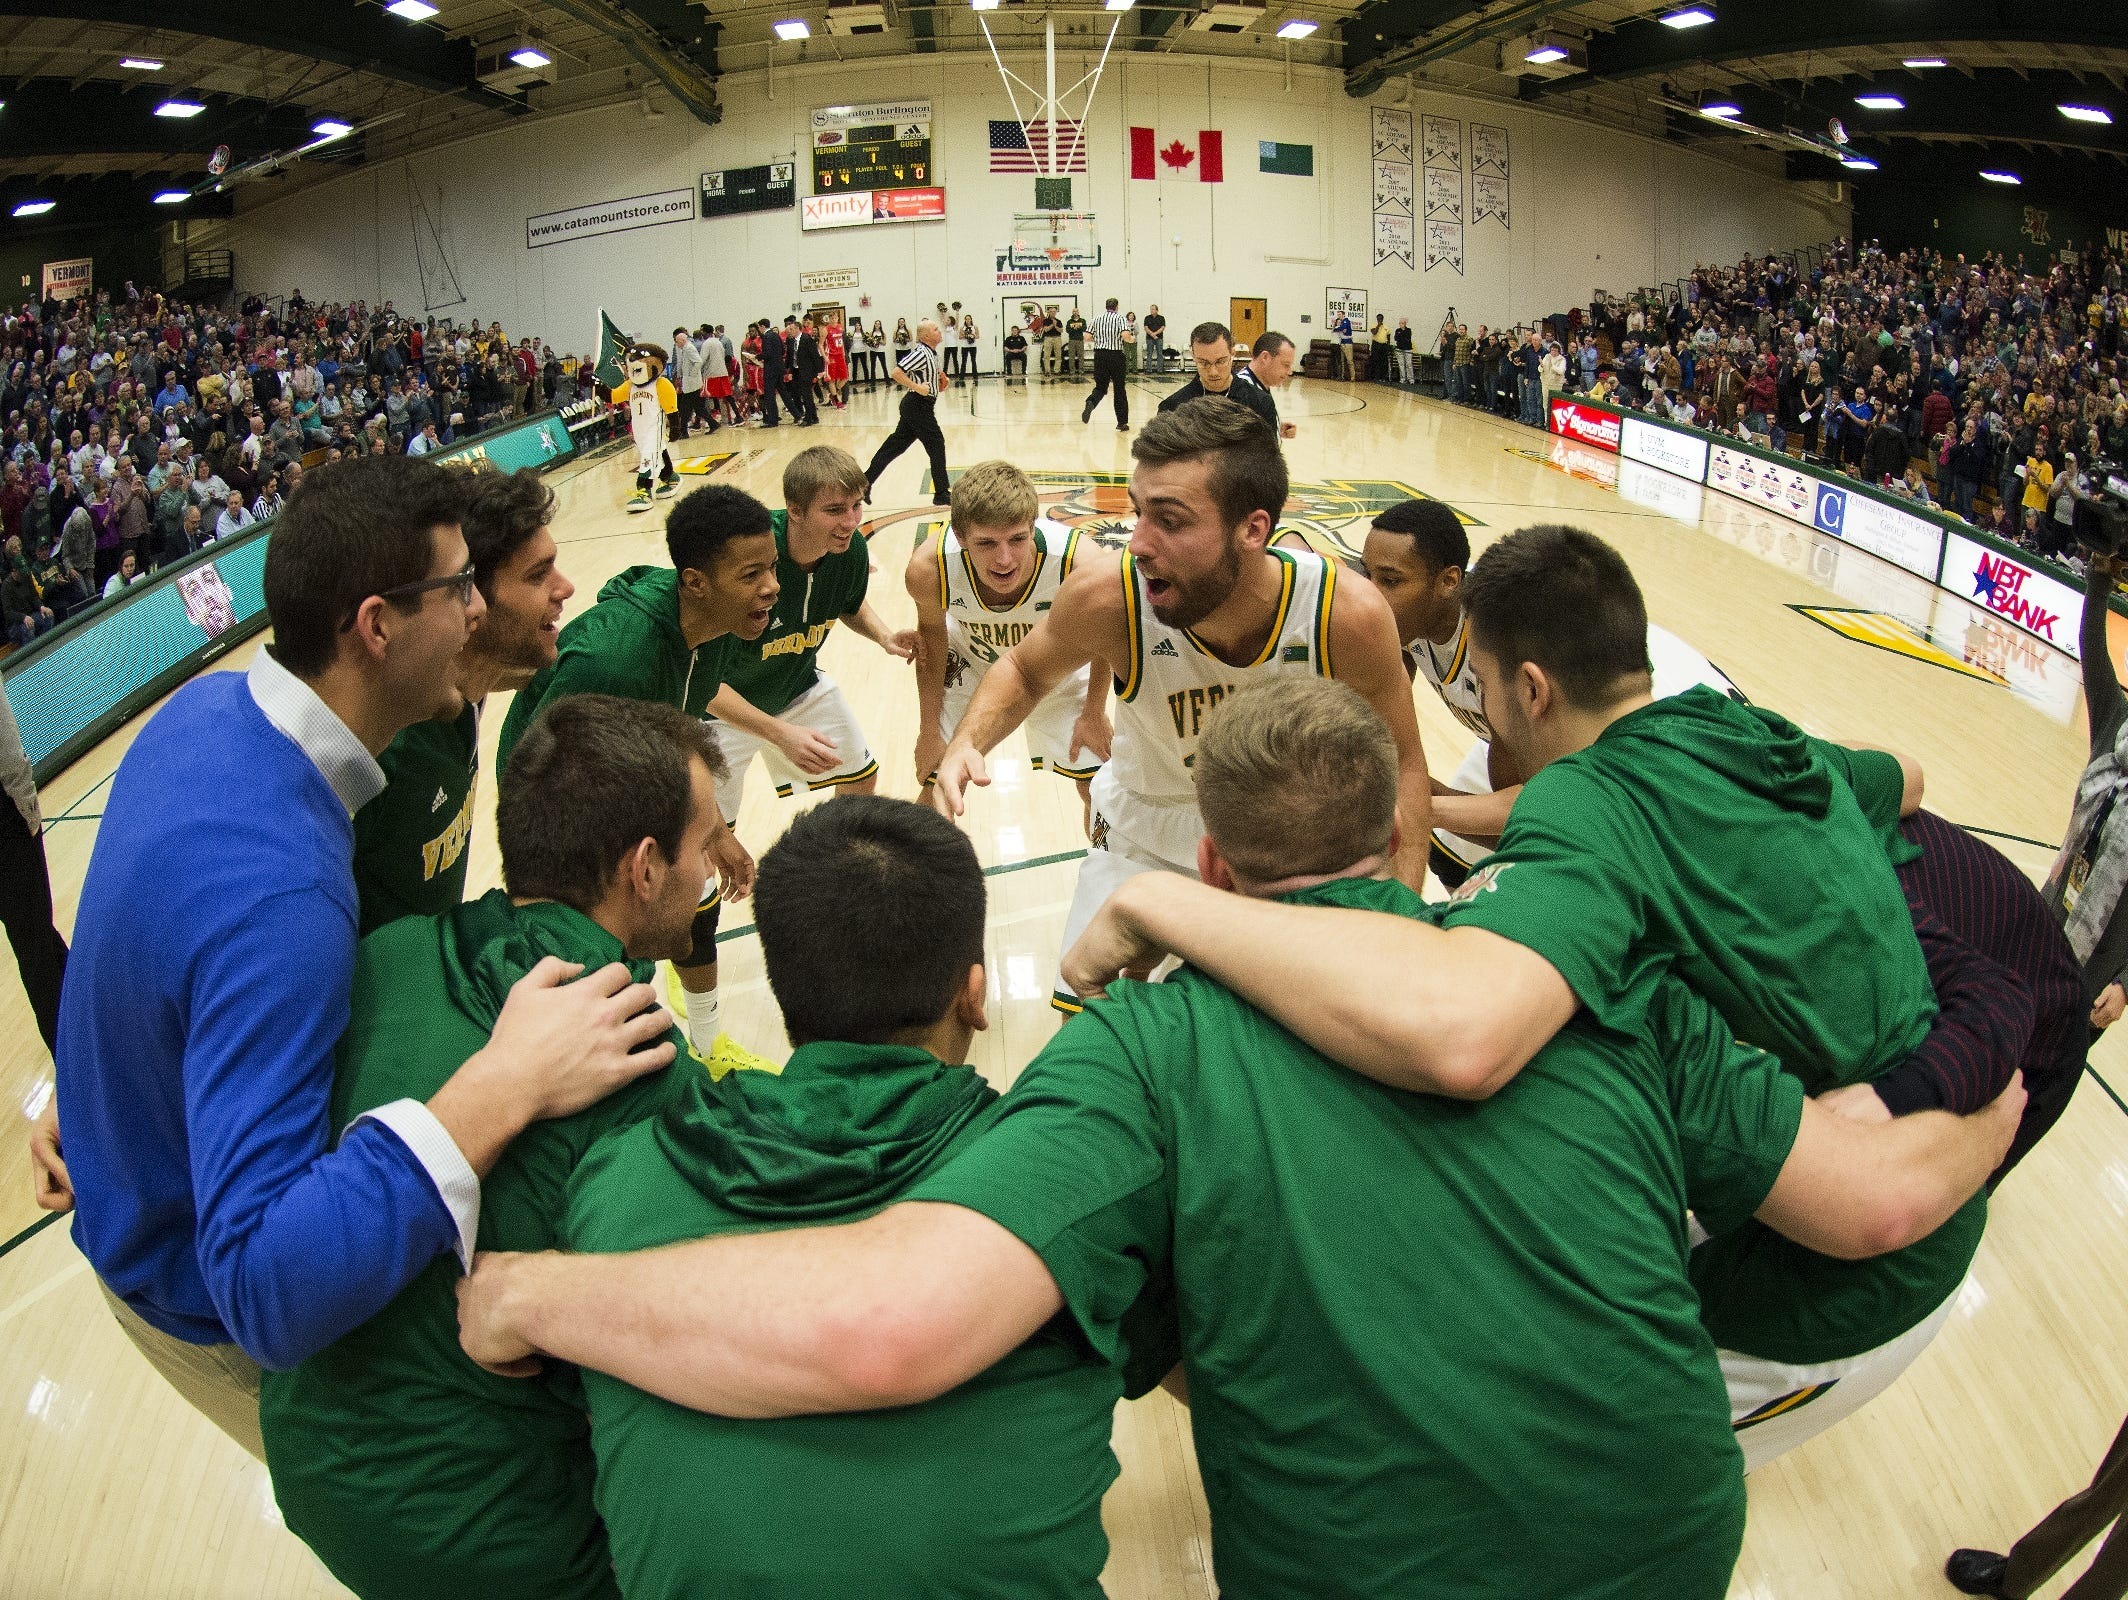 The Catamounts huddle together before the start of the men's basketball game between the Marist Red Foxes and the Vermont Catamounts at Patrick Gym on Sunday afternoon in Burlington.